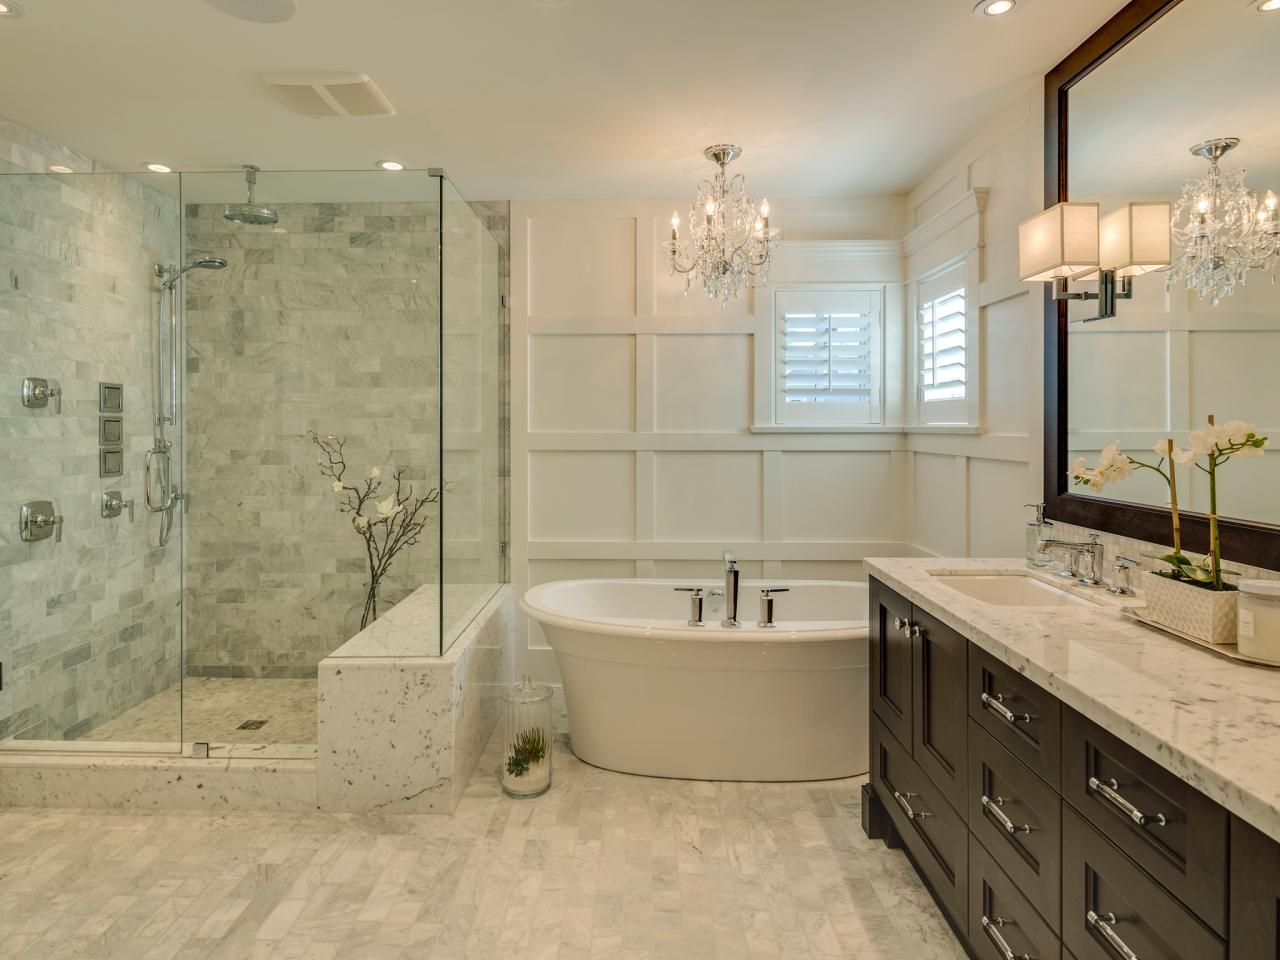 Big master bathroom - Splurge Or Save 16 Gorgeous Bath Updates For Any Budget